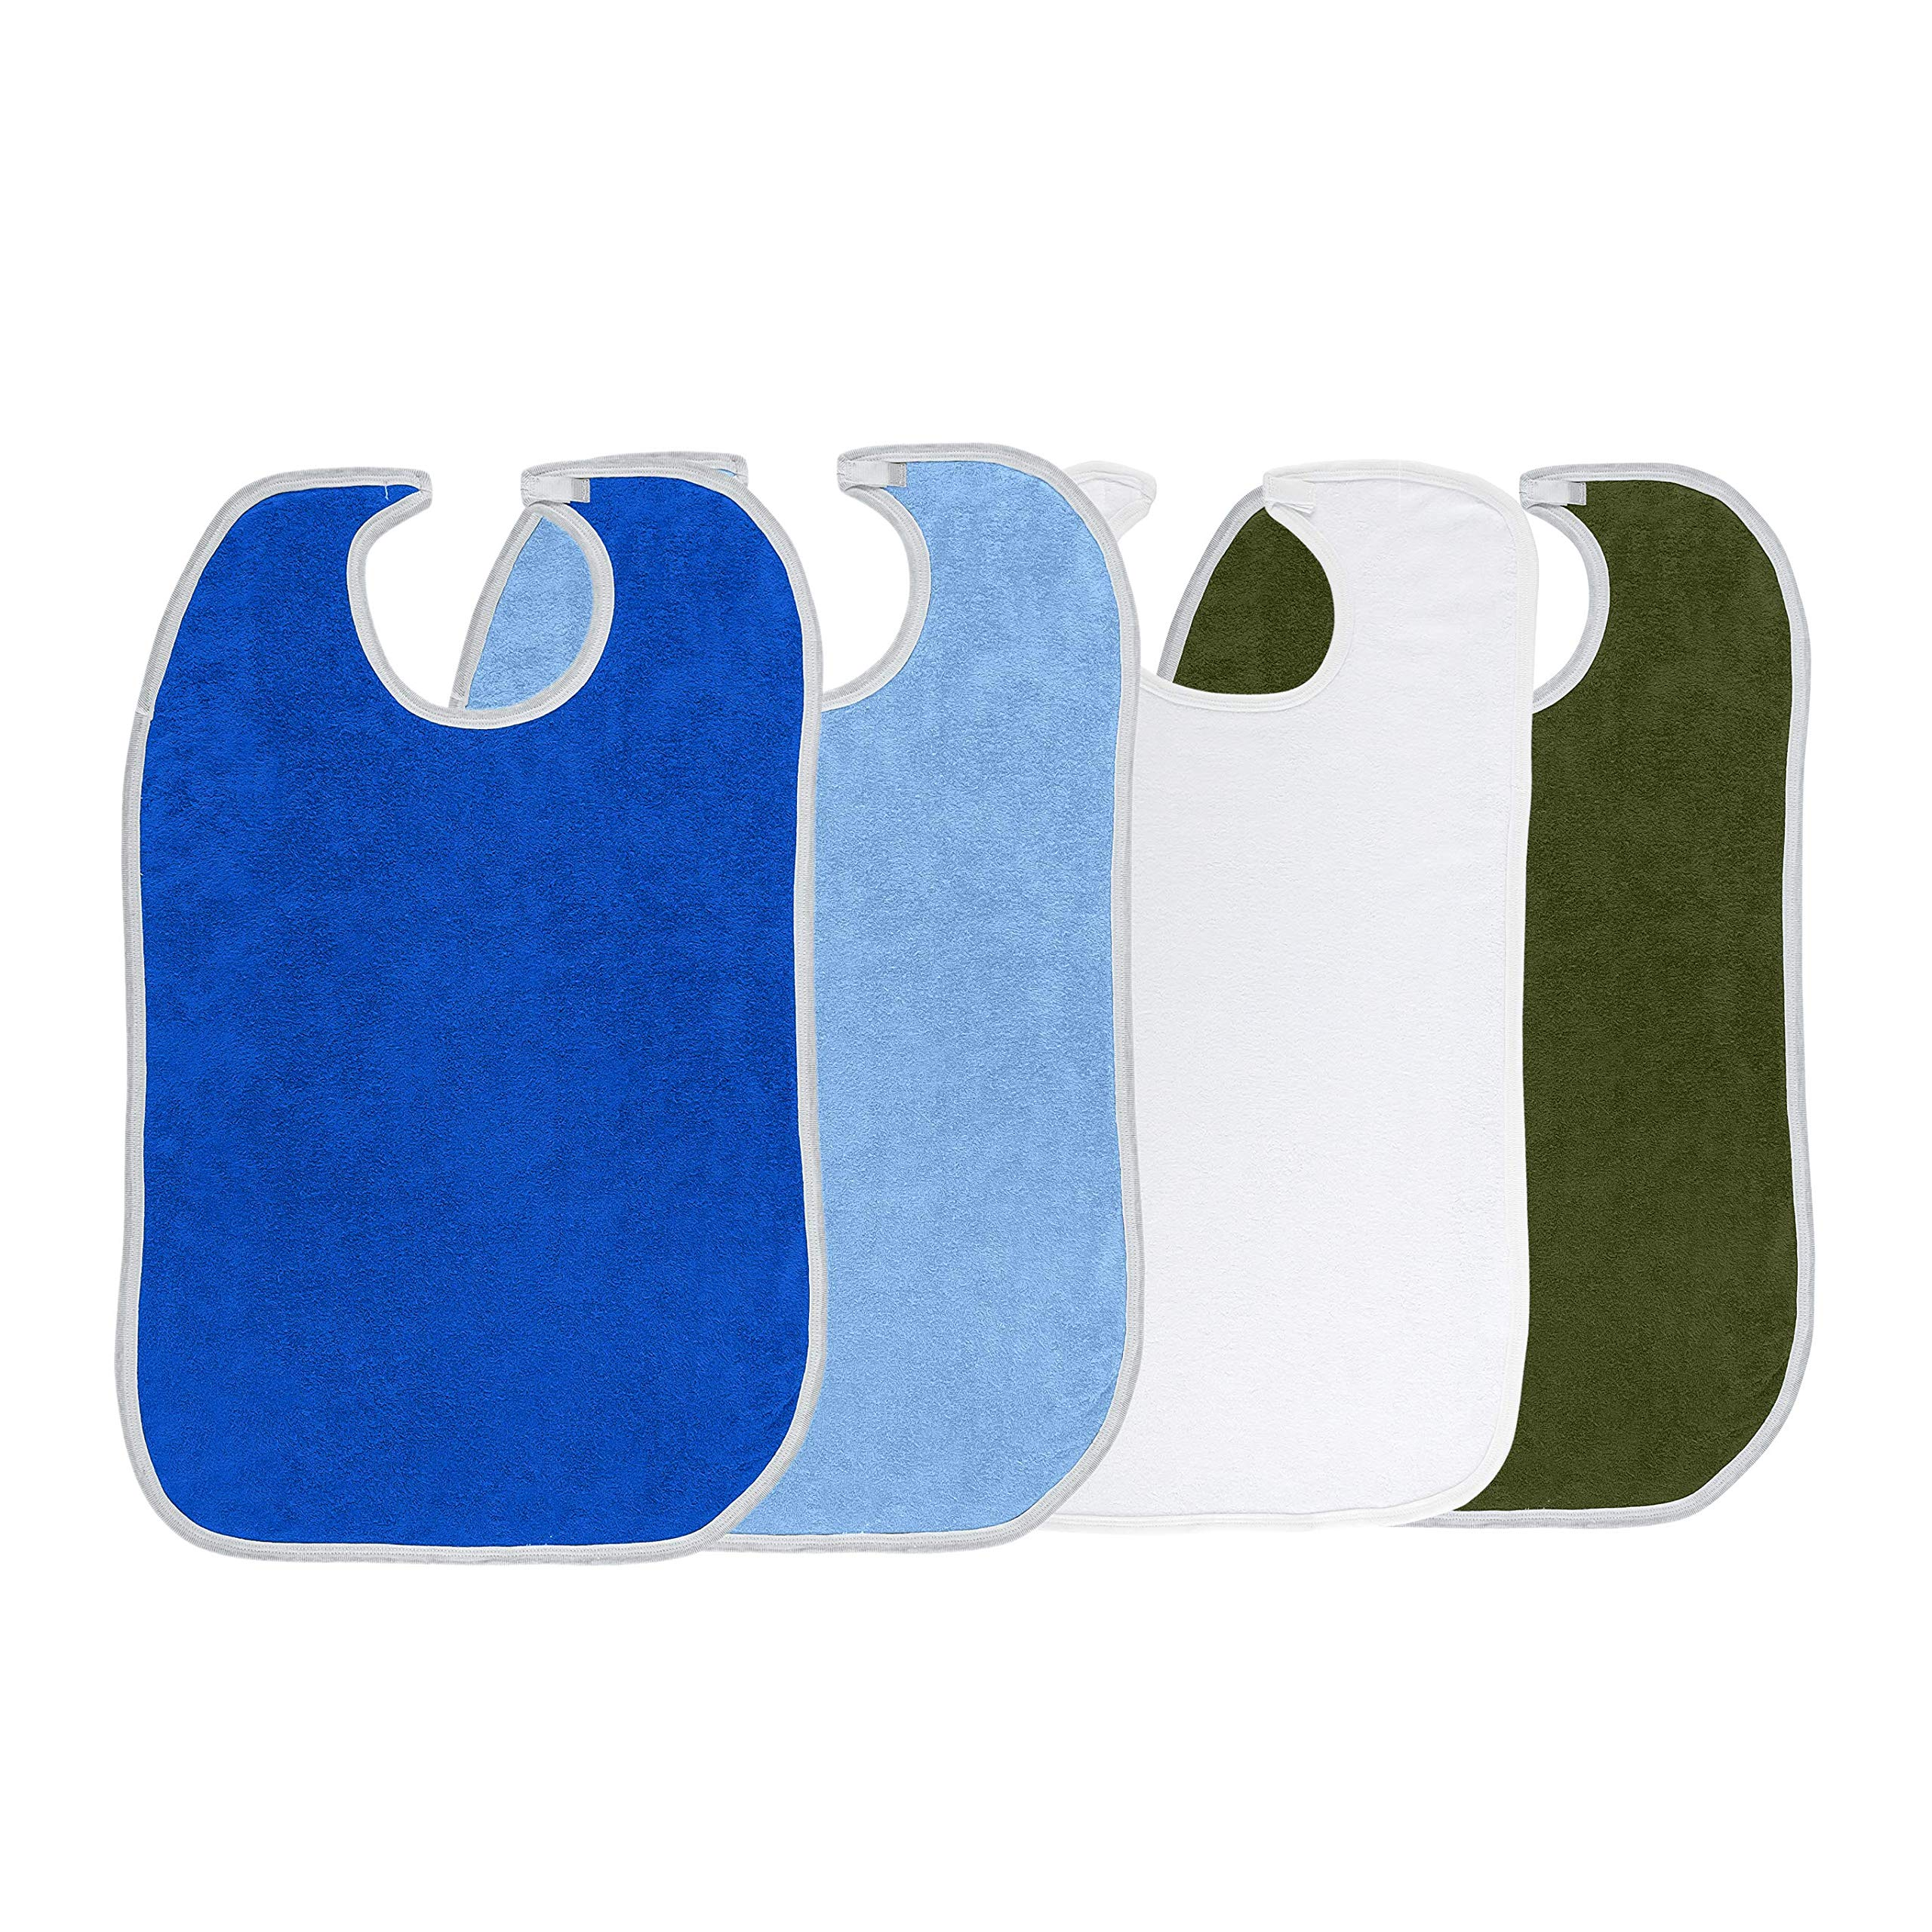 Terry Adult Reusable Bibs with Velcro Closure, 18'' x 30'', Double Ply Knit, Extra Absorbent and Washable, Multicolor, Pack of 4